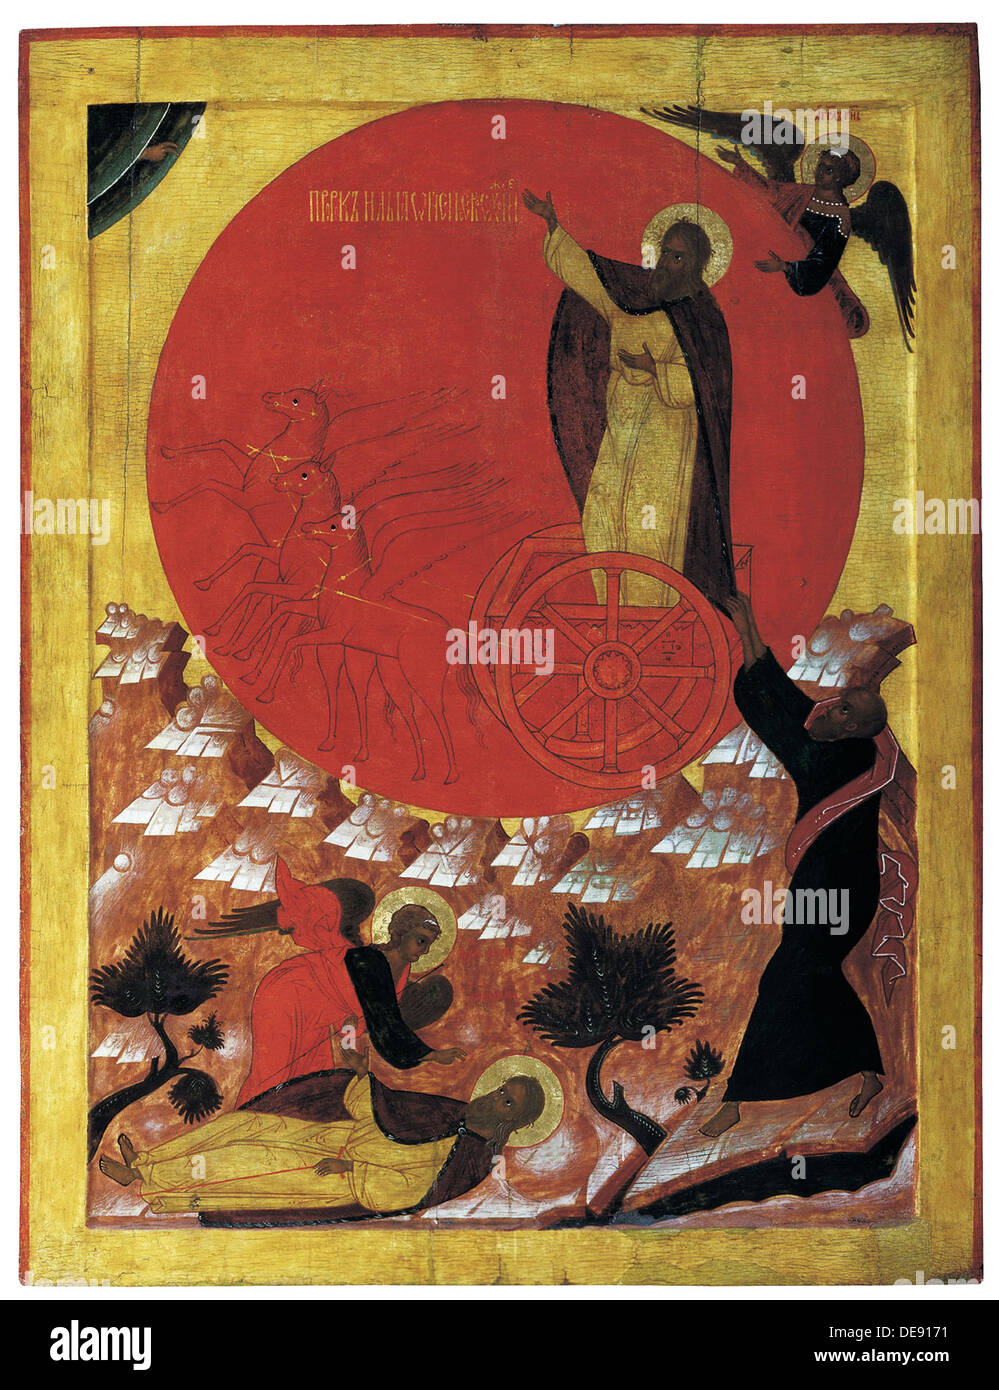 The Prophet Elijah and the Fiery Chariot, 1570s. Artist: Russian icon - Stock Image